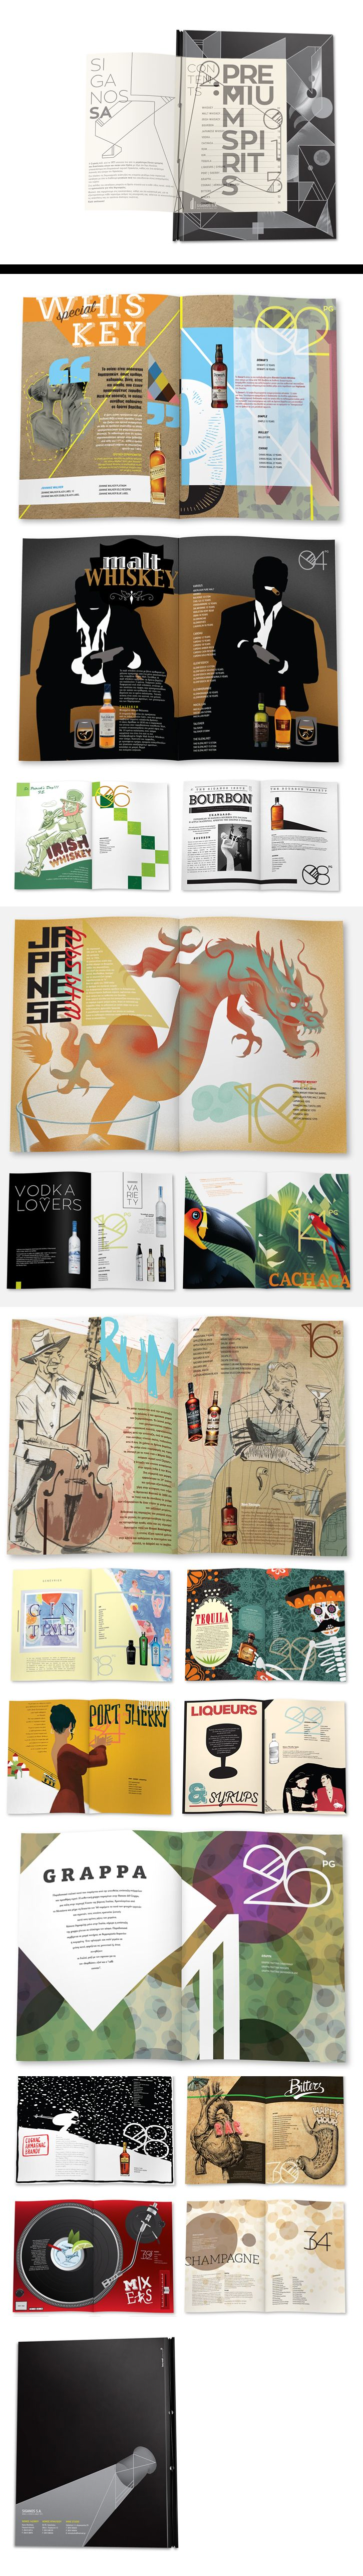 SIGANOS SA is a company of liquor distribution and trading. The company wanted to create a catalogue of the premium spirits it offers, targeted at bar-tending professionals. The concept was based on promoting each spirit's country of origin and its culture, thus creating attractive images in readers' minds. Our aim was to highlight each spirit's exquisite character through the idea of cosmopolitanism; a tasting journey that may inform, as well as inspire bartenders to try new combinations